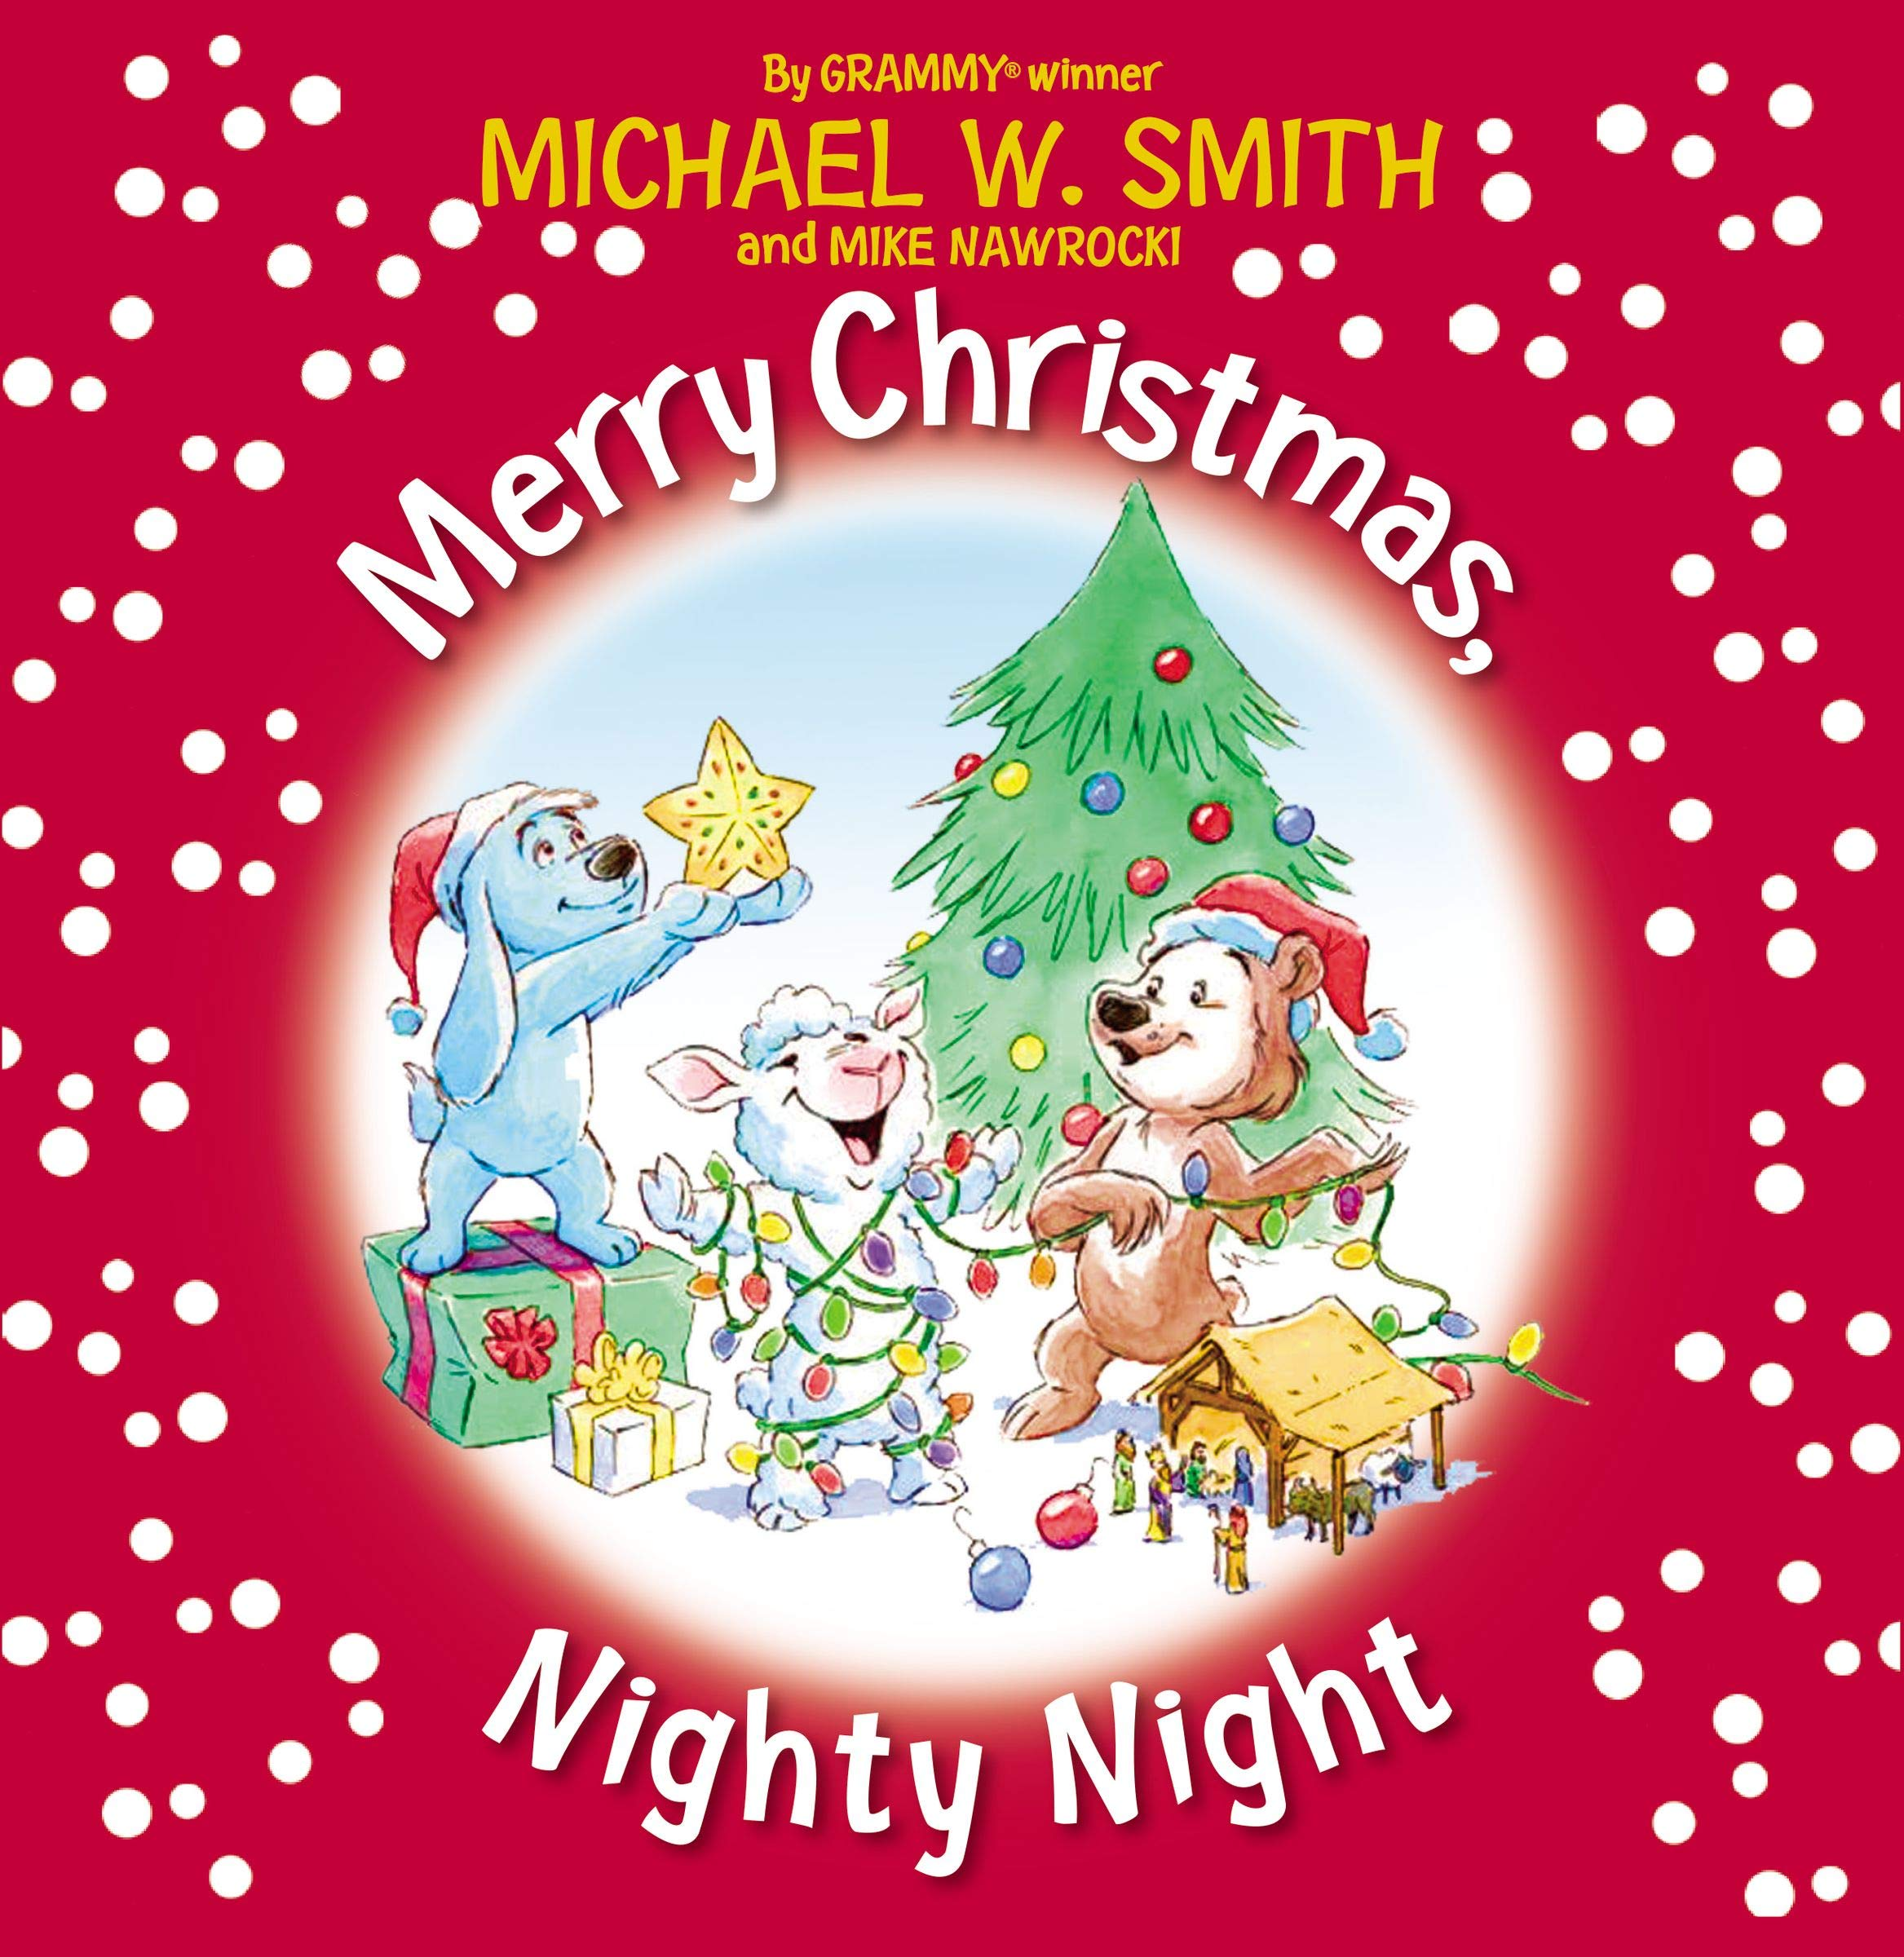 Merry christmas song video free download